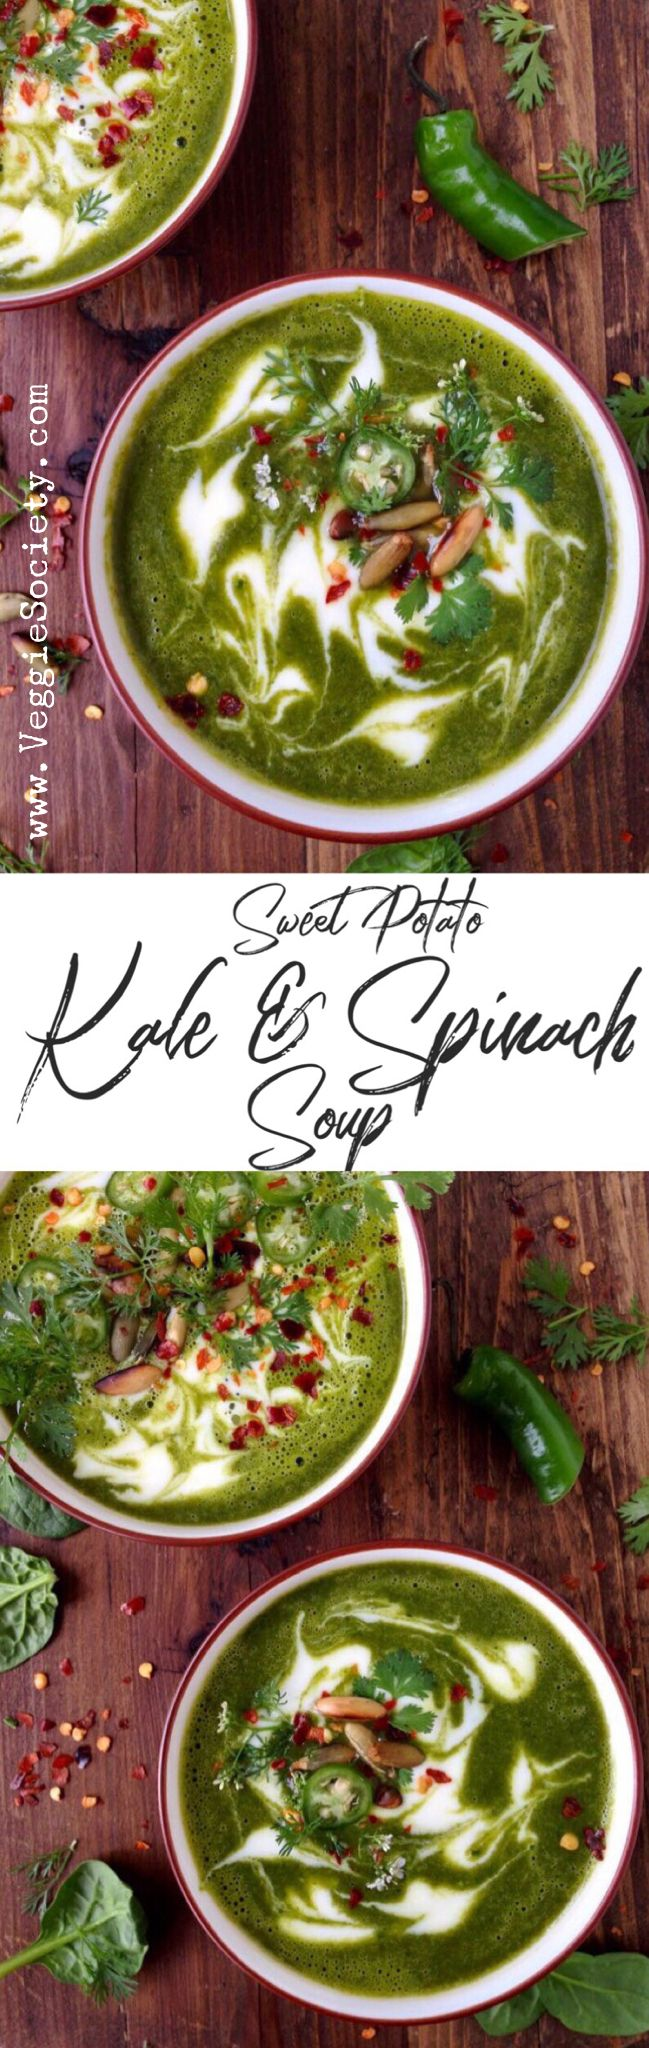 Creamy Kale Sweet Potato Soup Recipe with Spinach and Coconut Milk | VeggieSociety.com #vegan #plantbased #soup